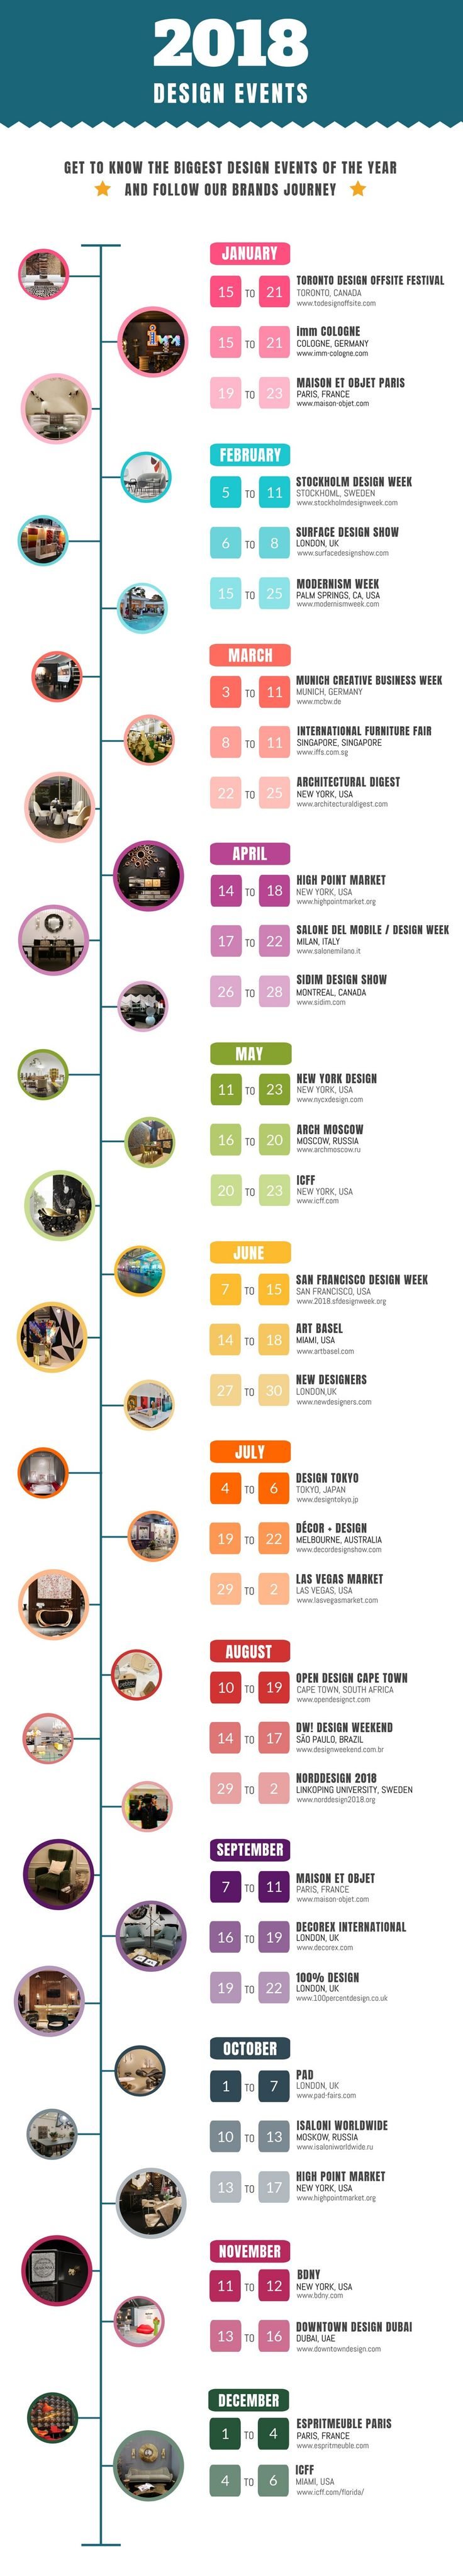 Discover The Top Design Events of 2018! #BestDesignEvents #Infographic #DesignEvents #Design #Events http://mydesignagenda.com/discover-the-top-design-events-of-2018/